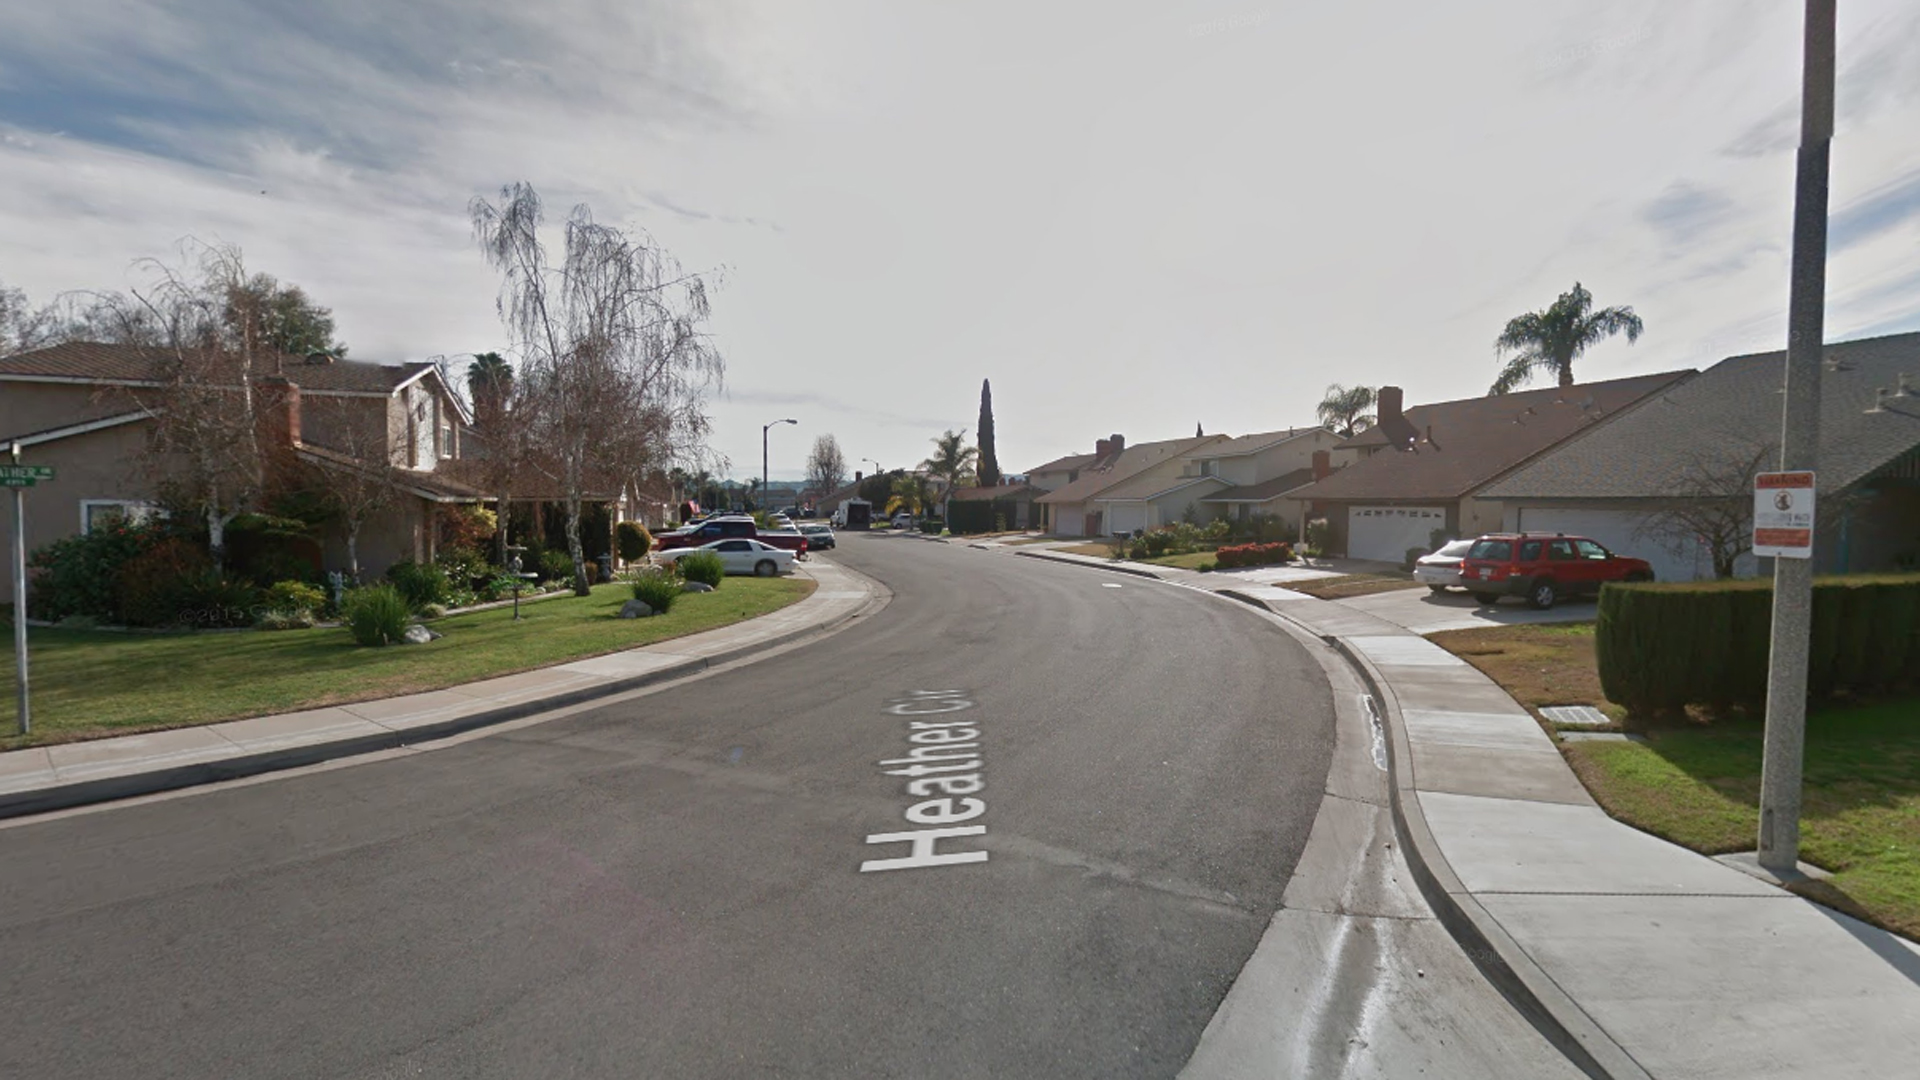 The 4300 block of Heather Circle in Chino, as pictured in a Google Street View image in January 2018.